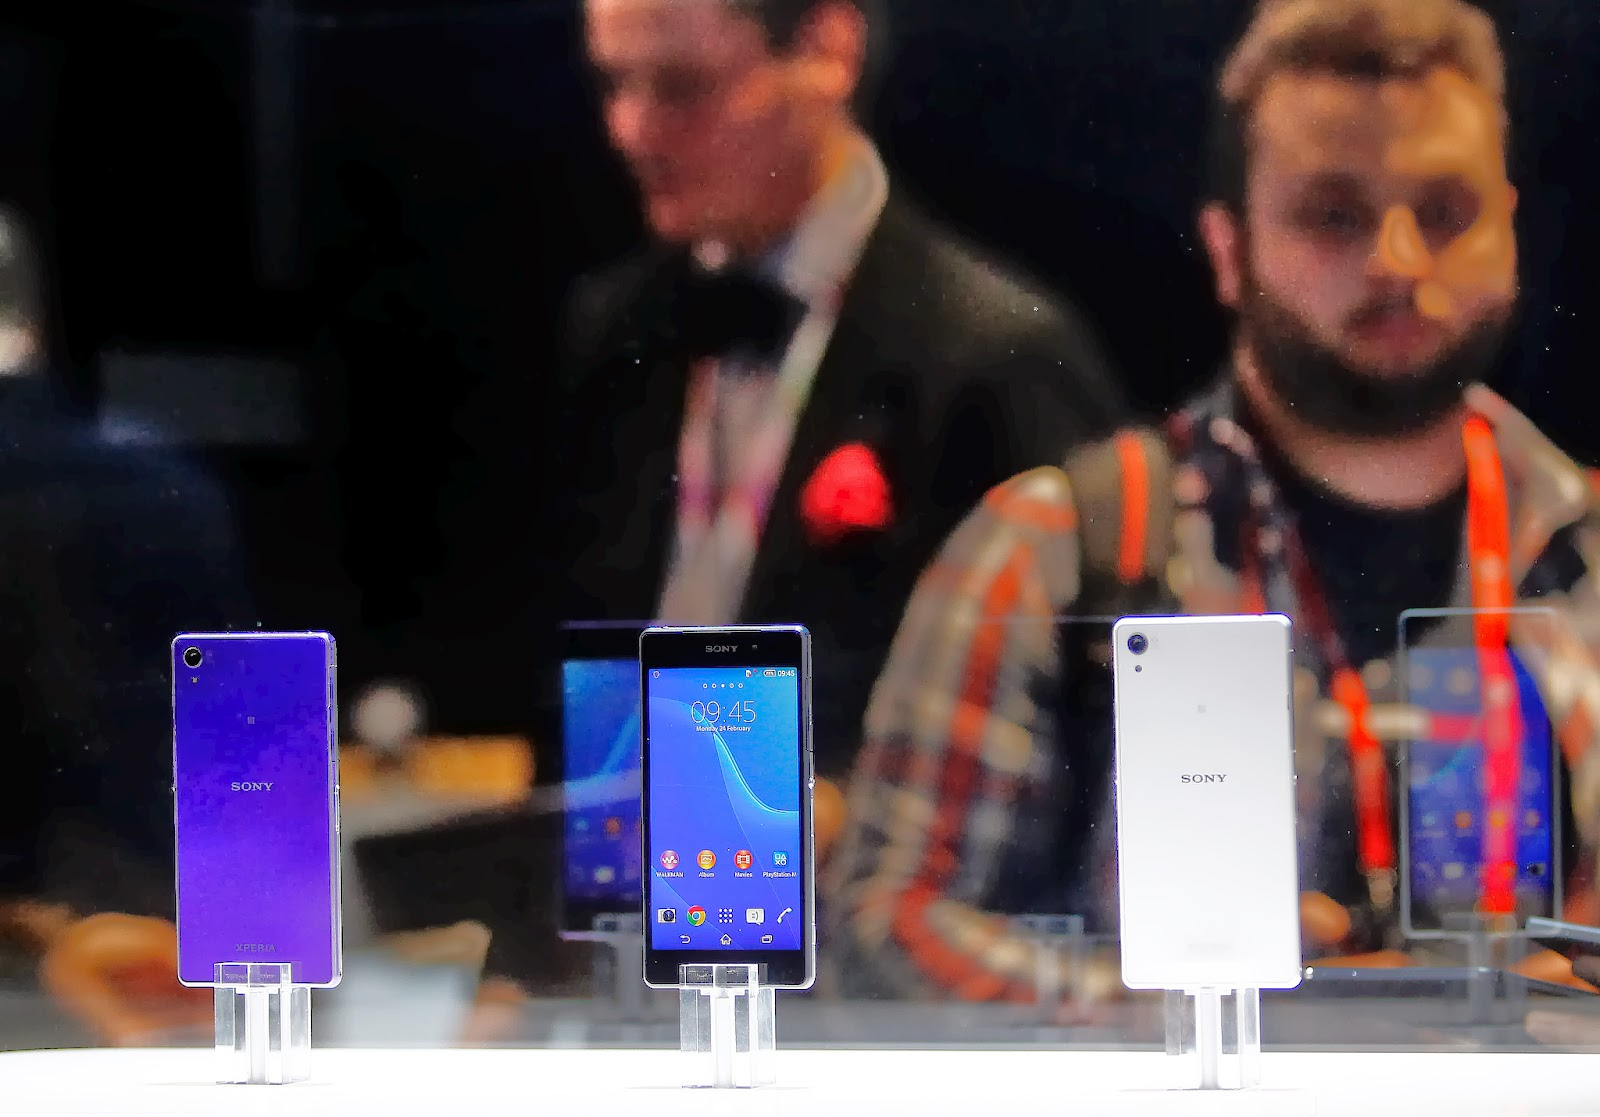 Barcelona, Business, Economy, Electronics, Exhibition, Exhibitor, Features of xperia z1, Kunimasa Suzuki, Mobile, Mobile World Congress, President-CEO of Sony, Smartphones, Tablet, Technology, Xperia Z1, Xperia Z2,